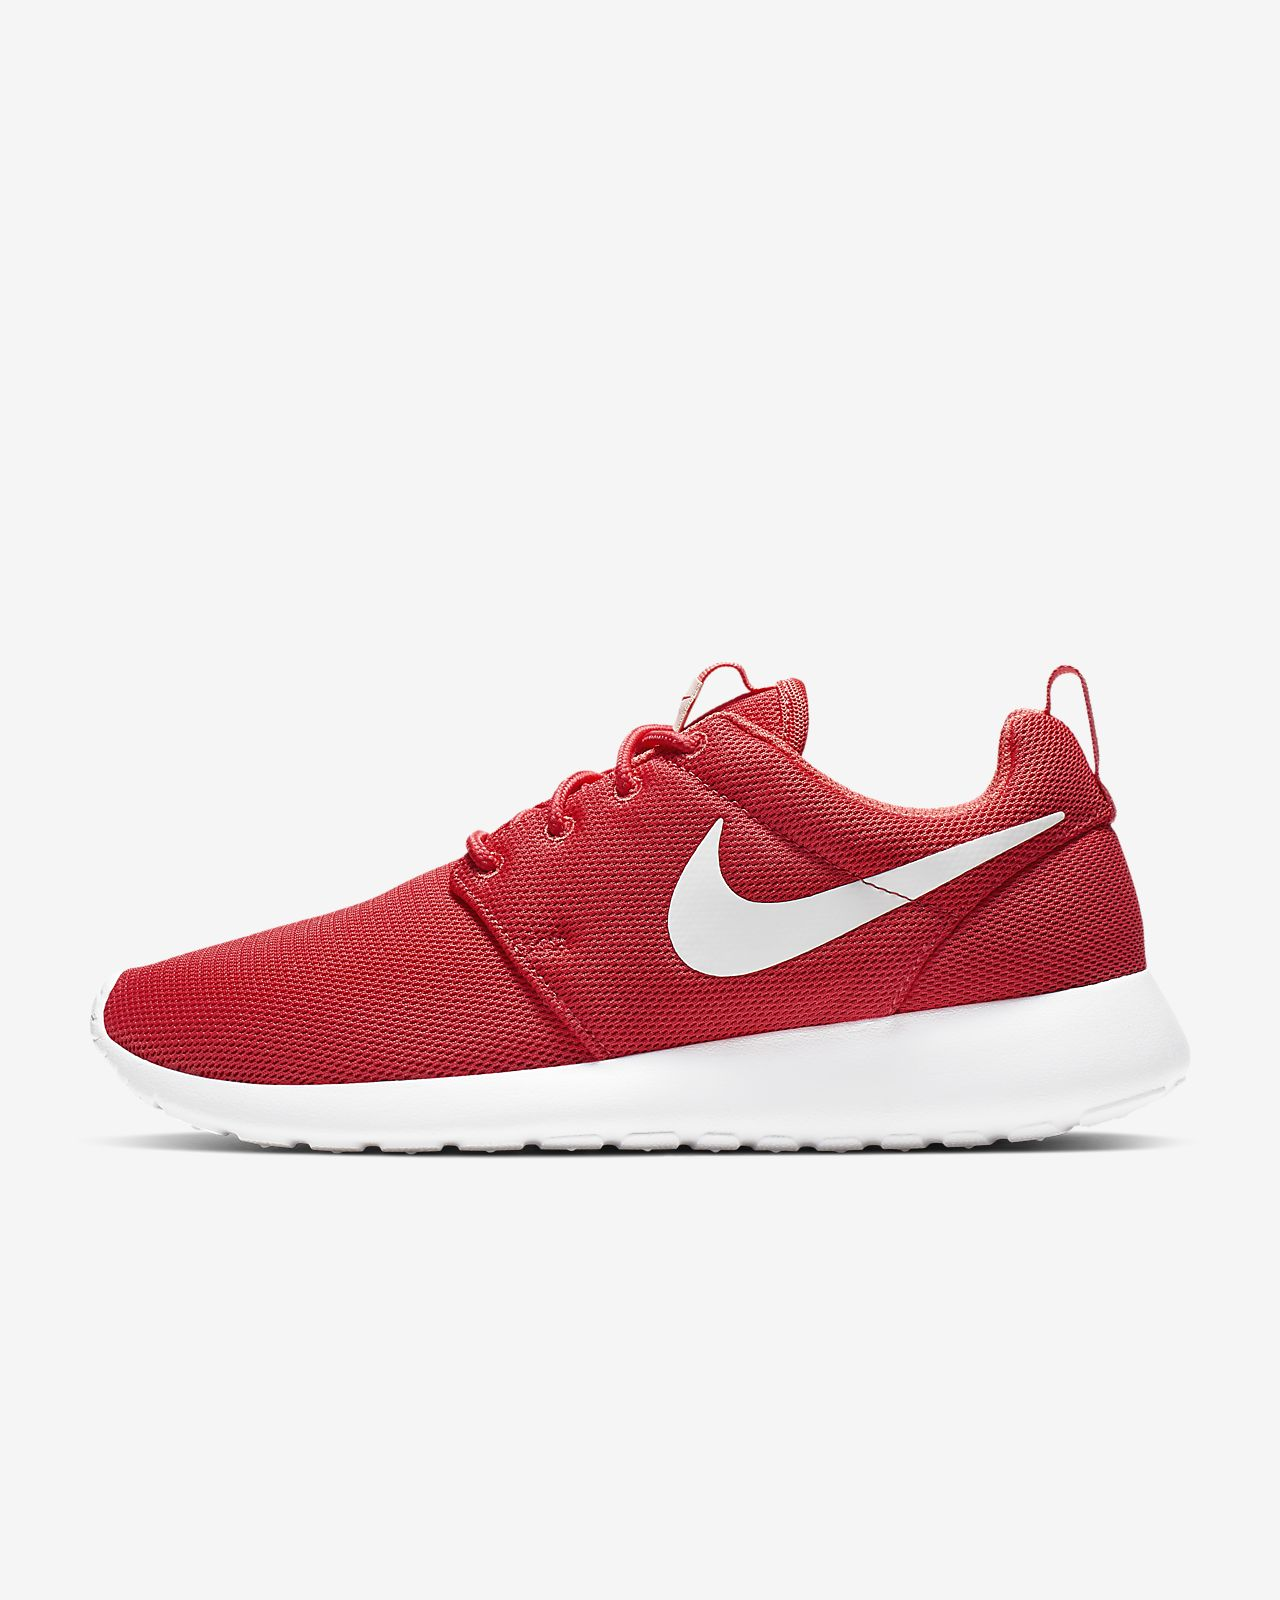 premium selection 095df f7b55 ... Nike Roshe One Women s Shoe